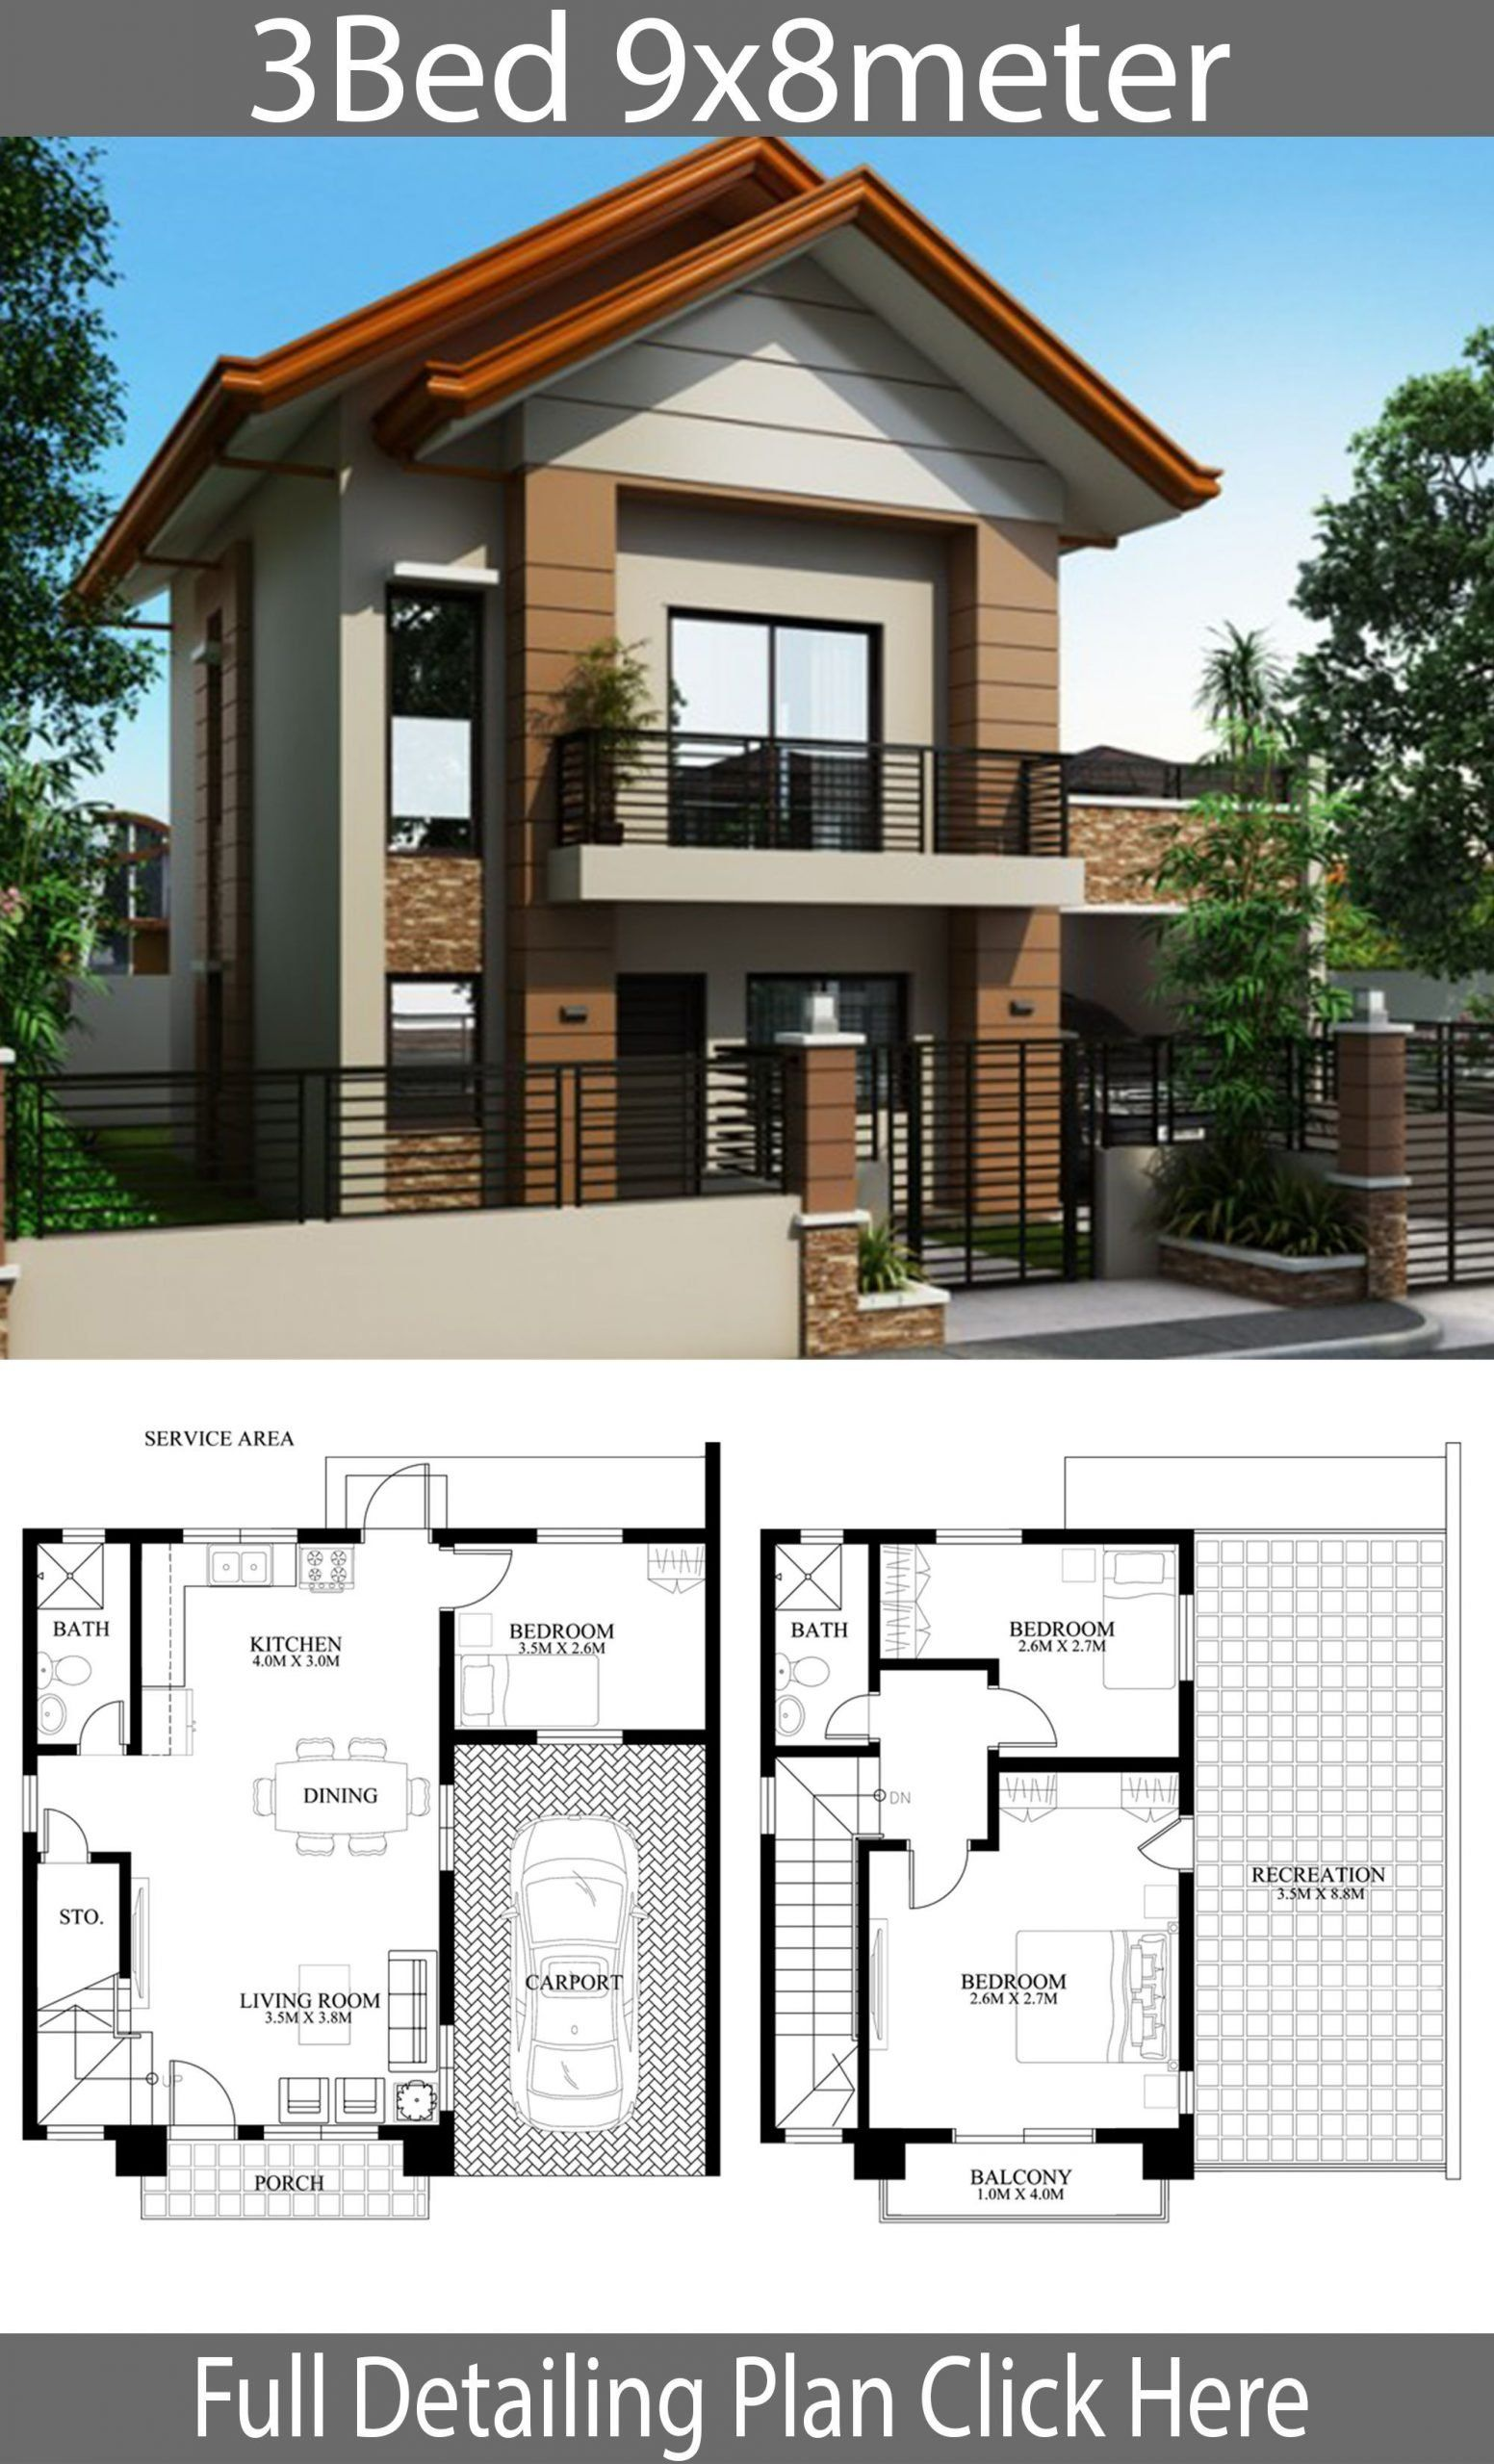 Modern House Designs 2 Story 5 Home Plan Ideas 8x13m 9x8m 10x13m 11x12m Model House Plan Two Story House Design 2 Storey House Design